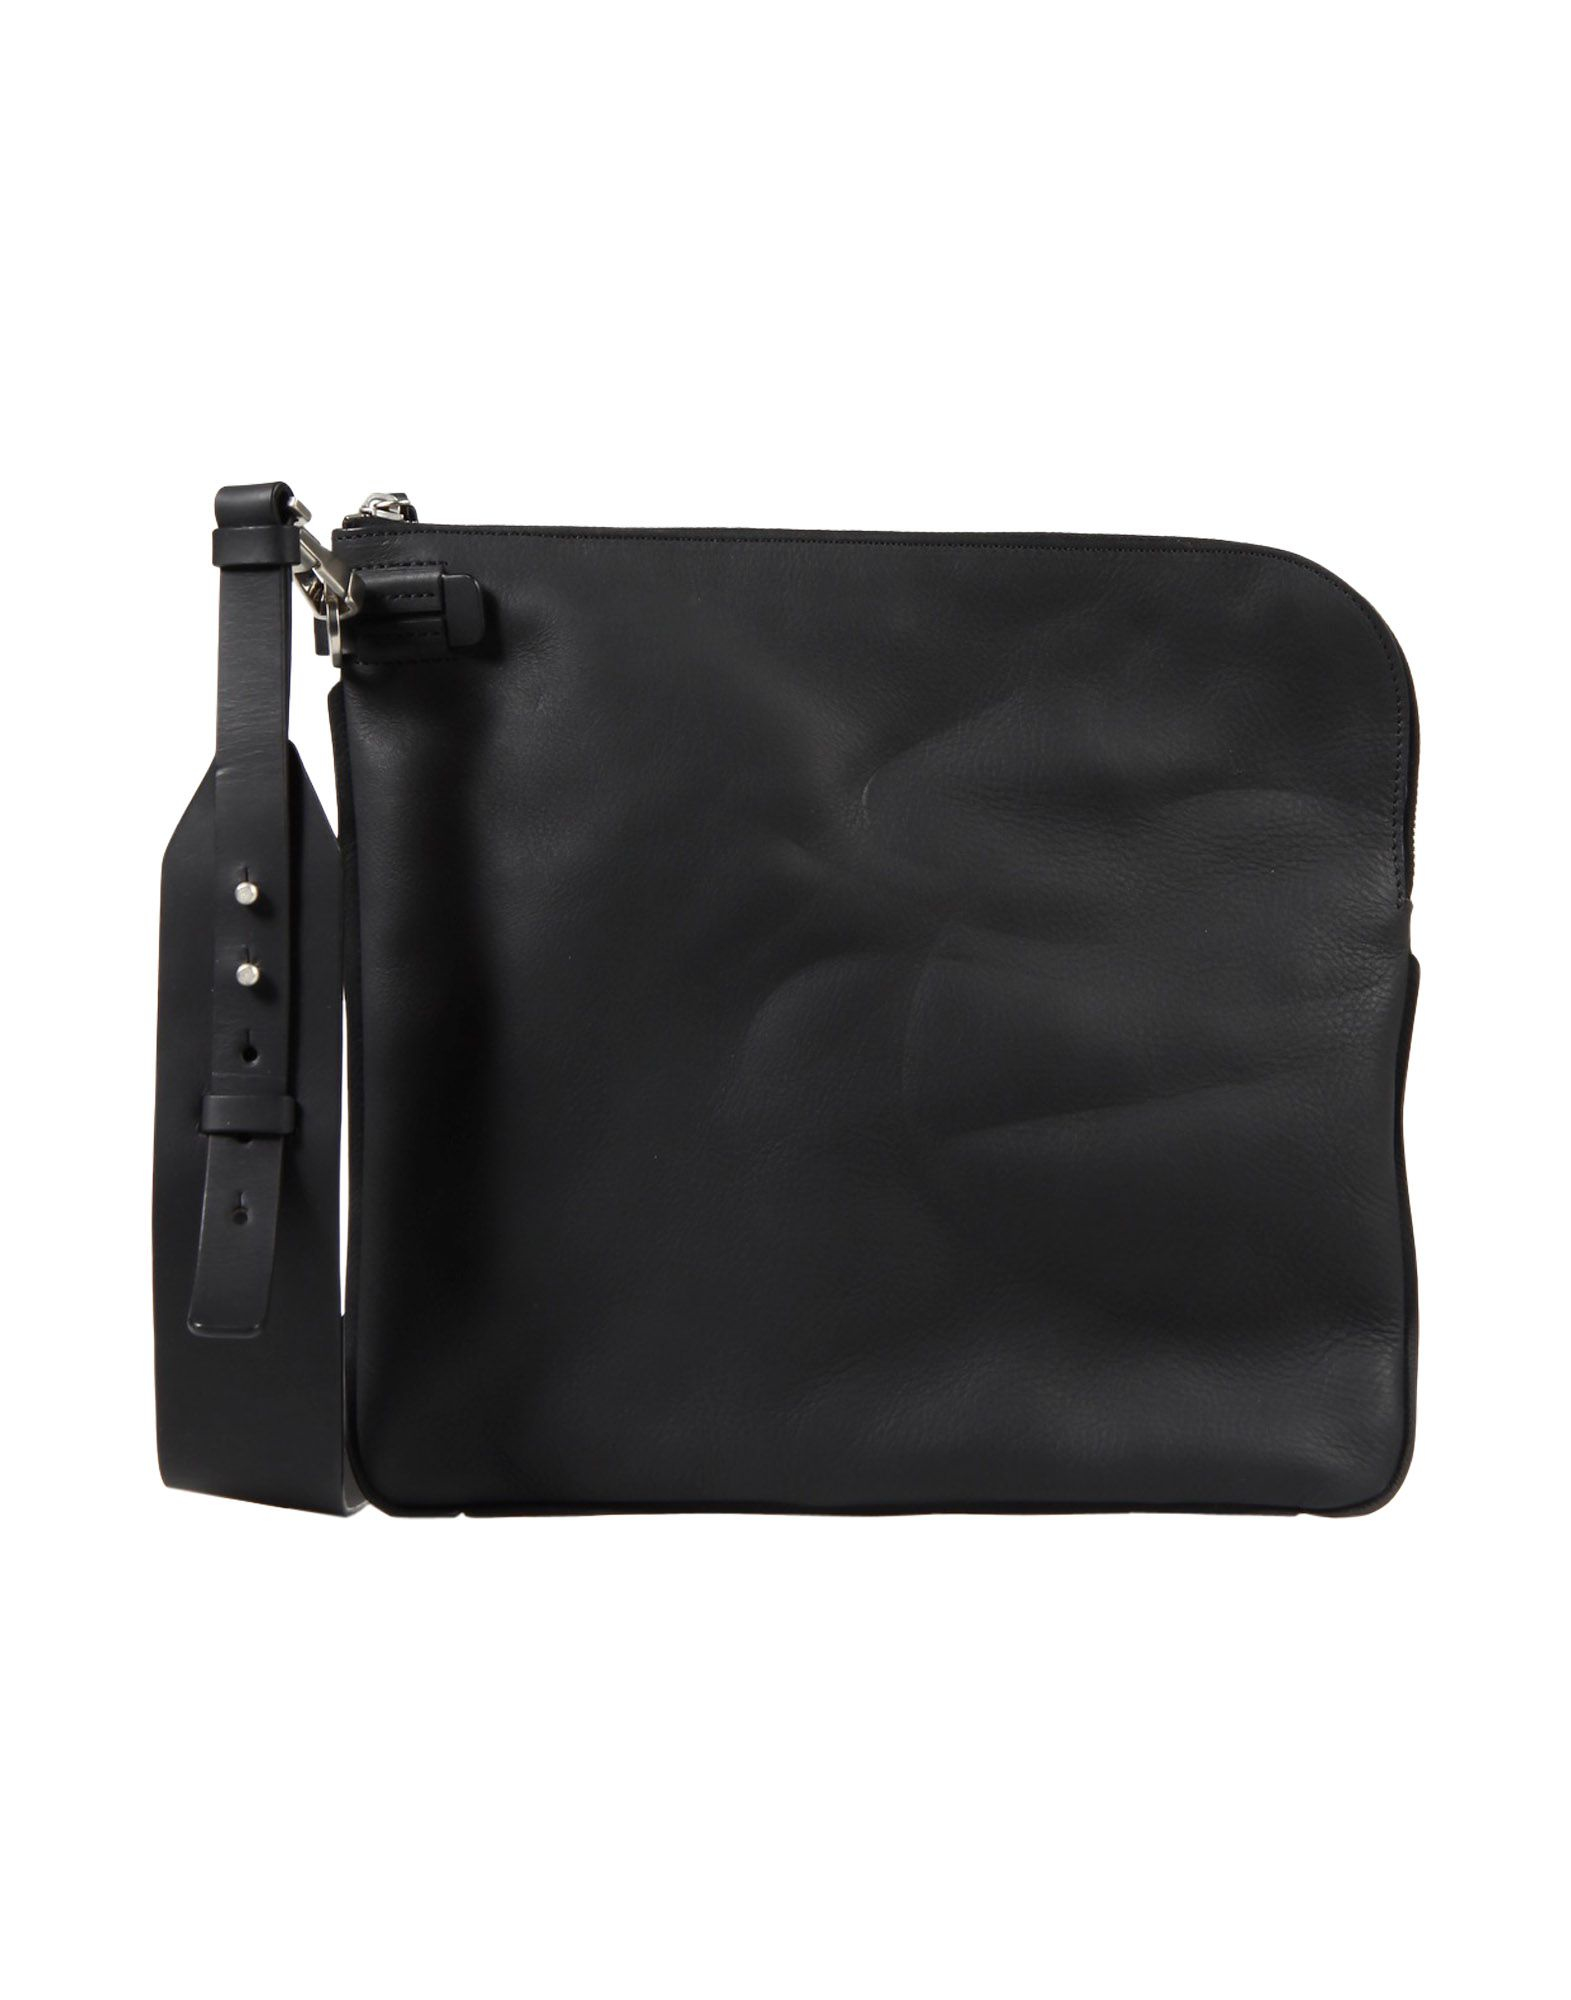 Lyst - Bonastre Cross-body Bag in Black for Men cd0aeb6642801